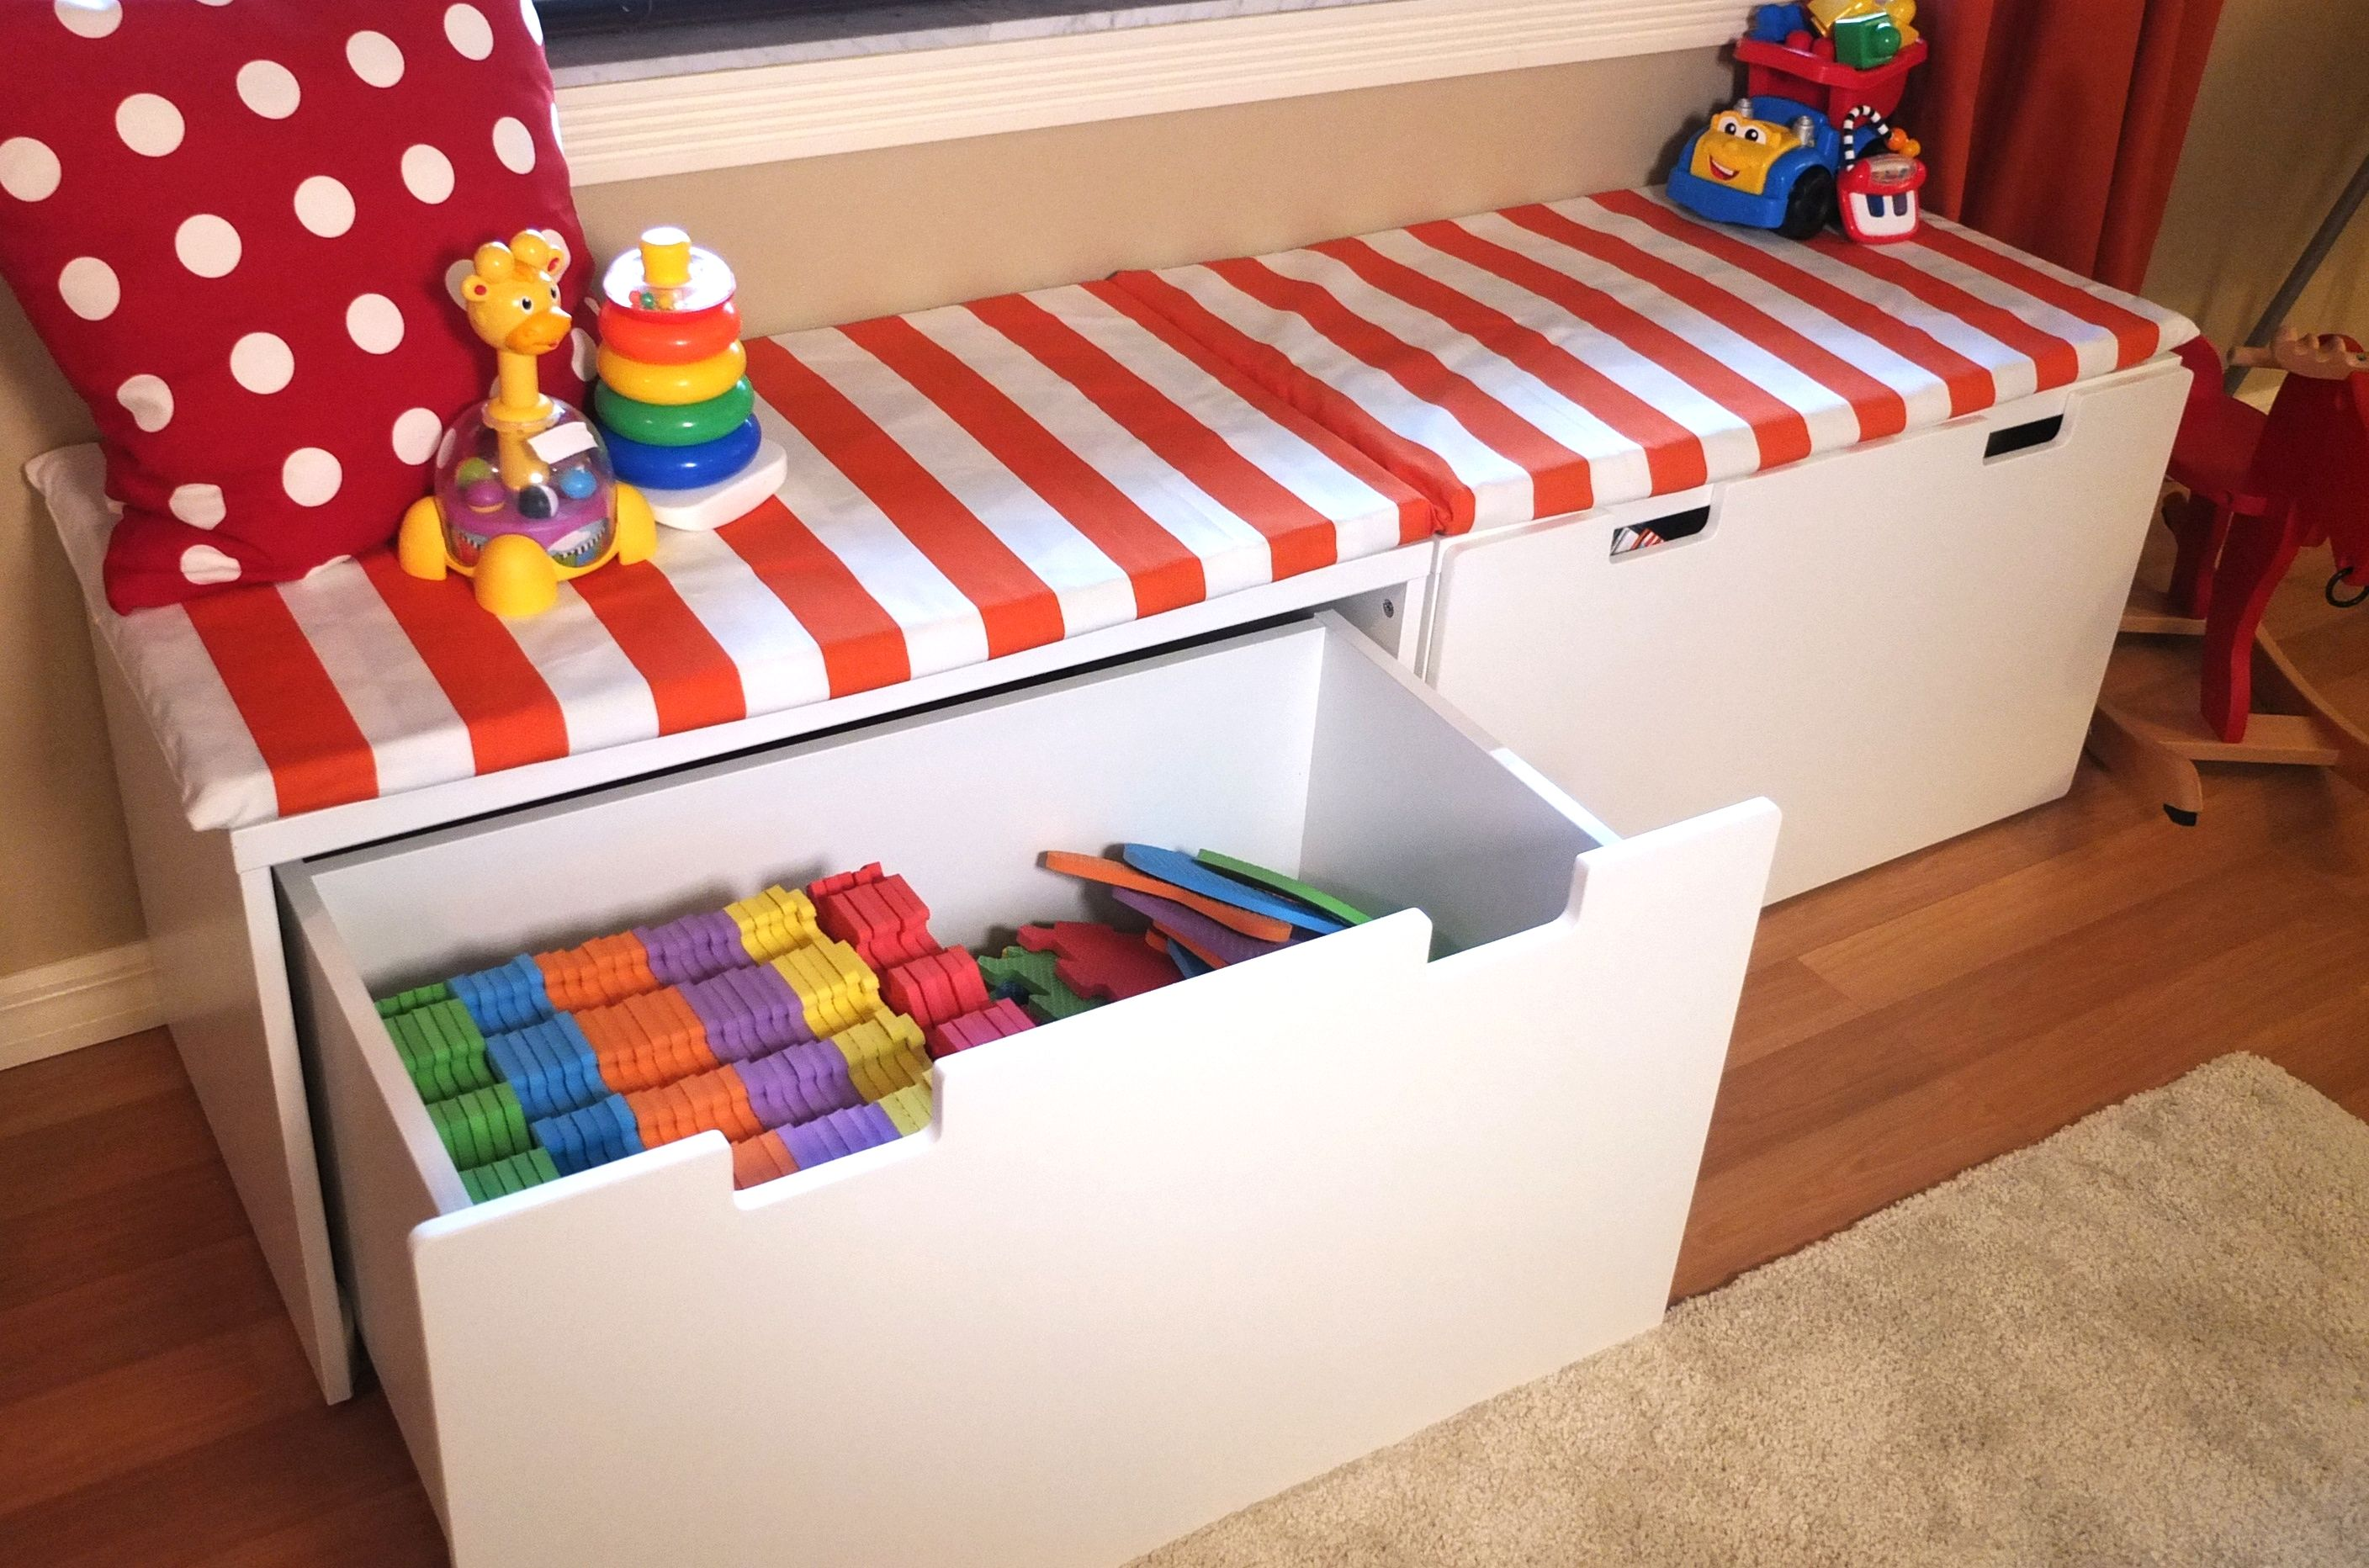 Ikea Toy Storage The Stuva Storage Bench Provides A Comfortable Window Seat